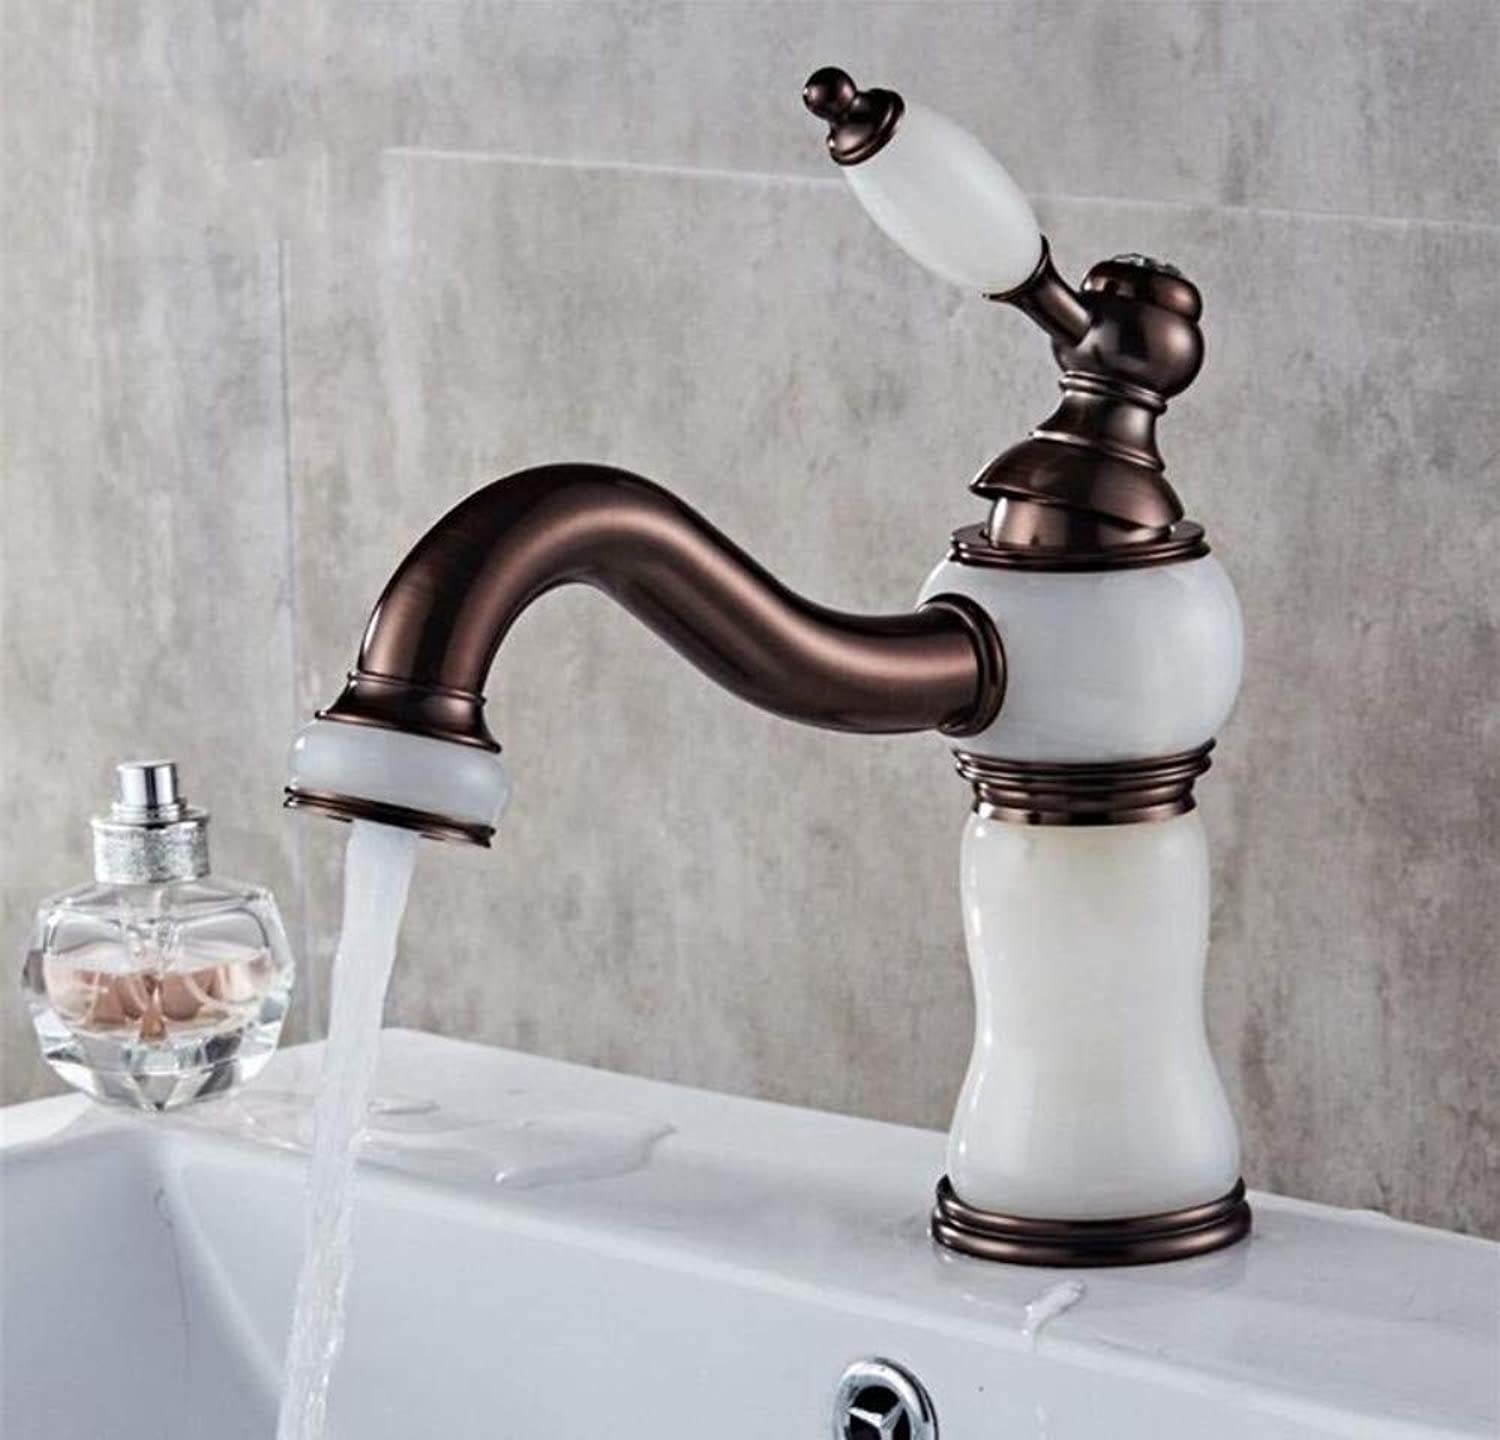 Modern Waterfall Copper Hot and Cold Kitchen Sink Taps Kitchen Faucet Bathroom Basin